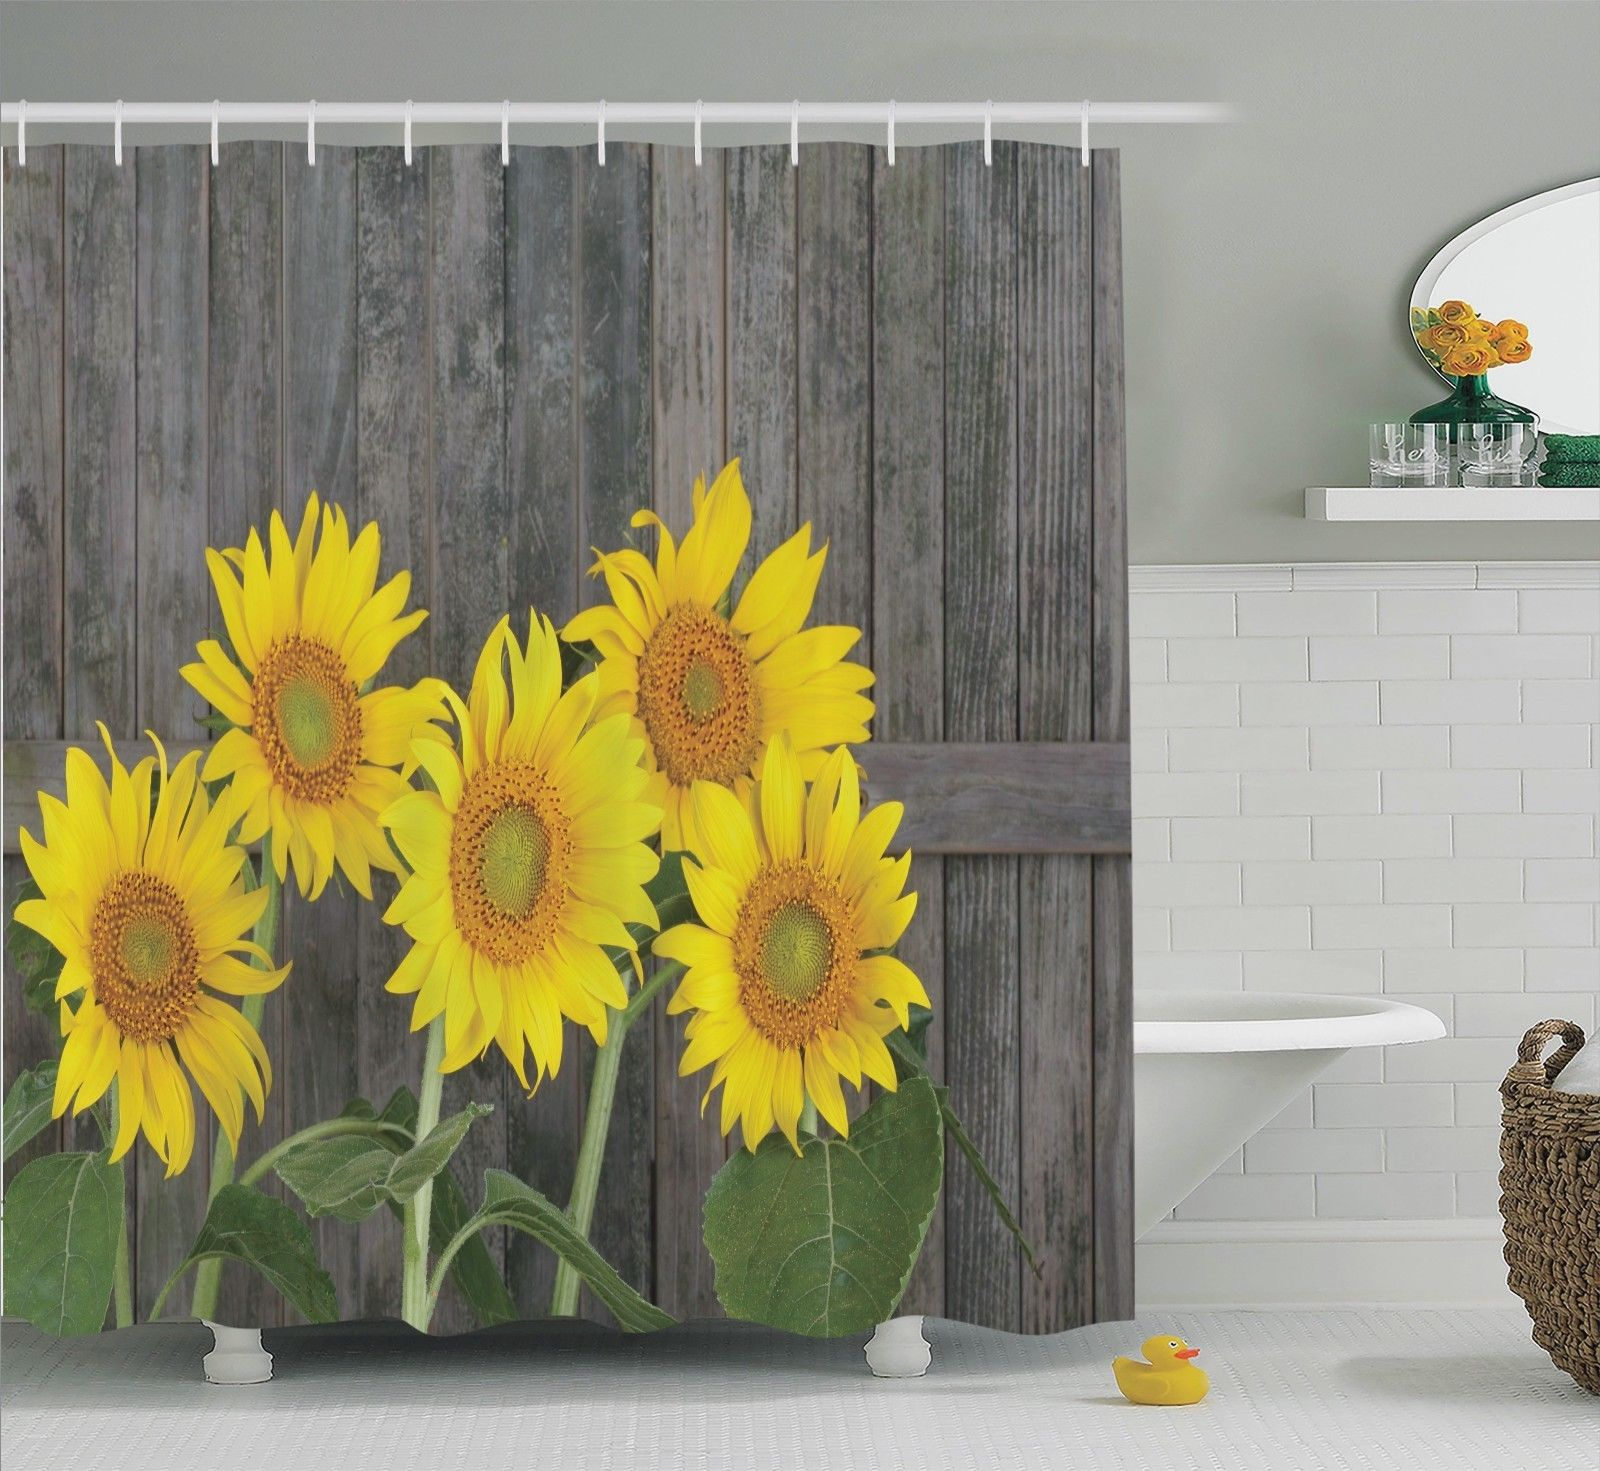 Ordinaire Sunflower Decor Shower Curtain Set, Helianthus Sunflowers Against Weathered  Aged Fence Summer Garden Photo Print